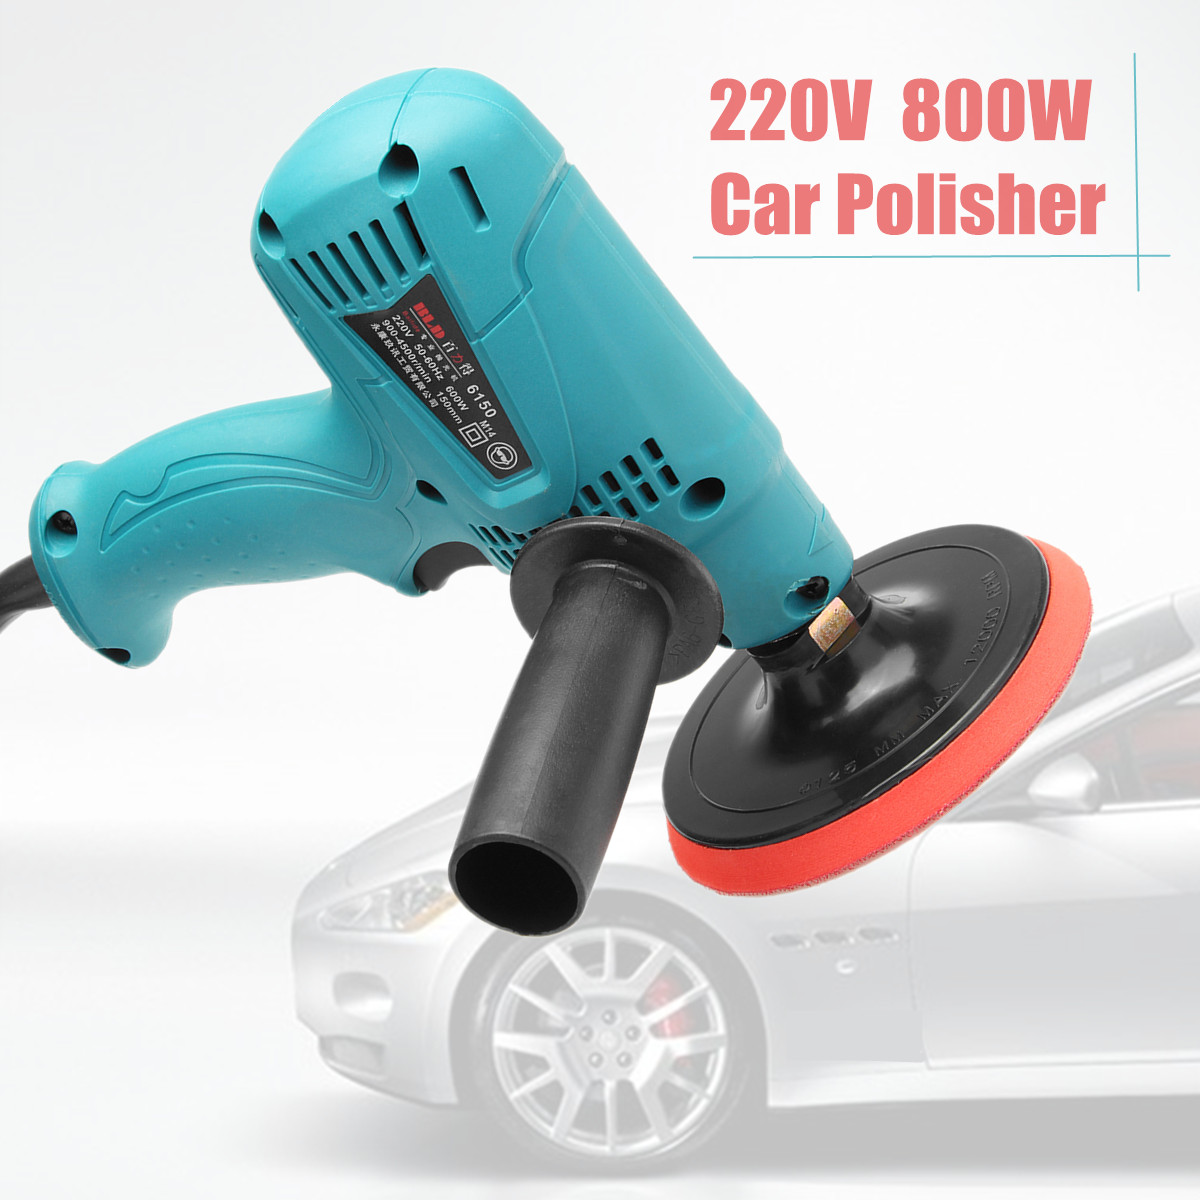 220V 800W Car Polisher 3500r/min Speed Adjustable Electric Car Boat Polishing Waxing Sander Buffer цена